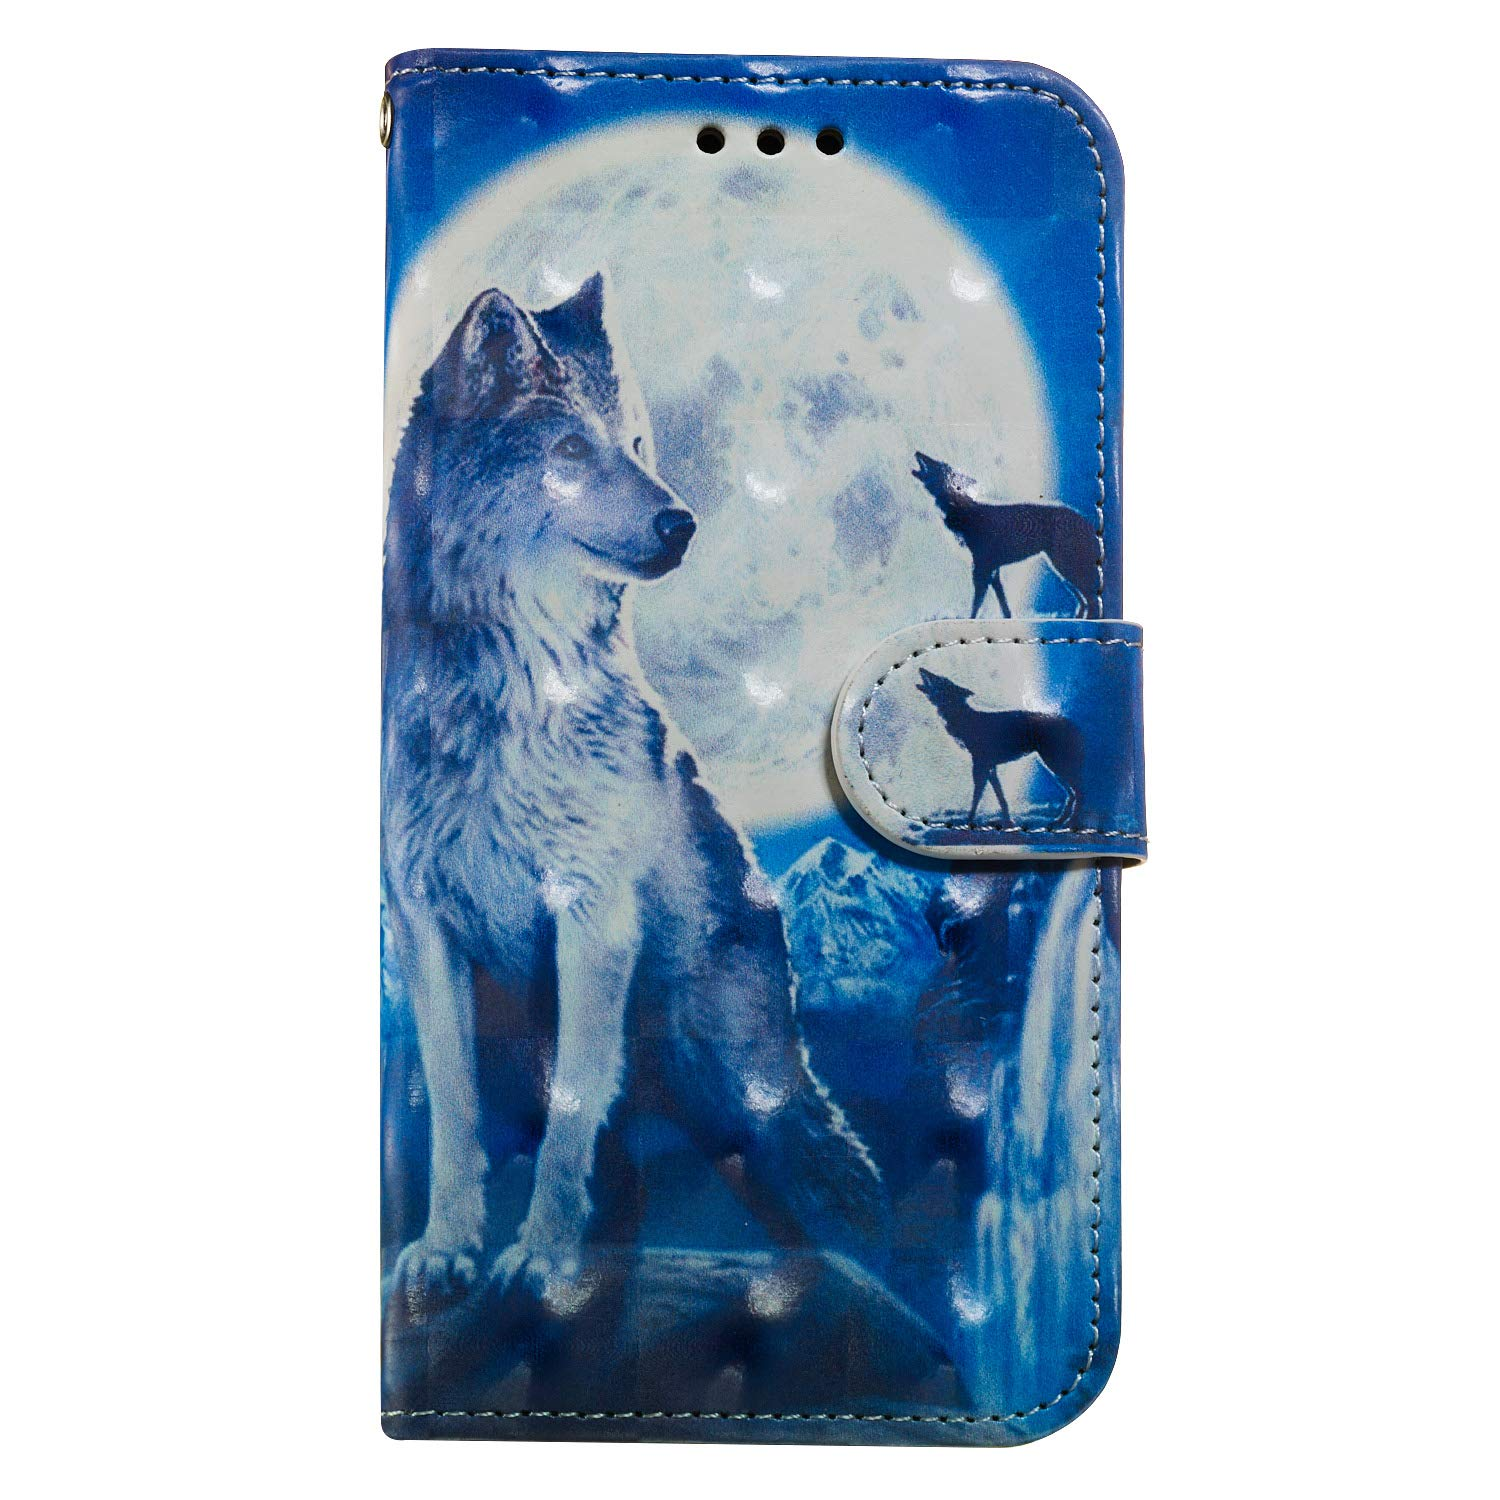 Maoerdo LG Stylo 4 Wallet Case,3D Beauty Luxury Fashion PU Flip Stand Credit Card ID Holders Wallet Leather Case Cover for LG Stylo 4 Plus/LG Q Stylo 4 / Q8 2018 - Wolf